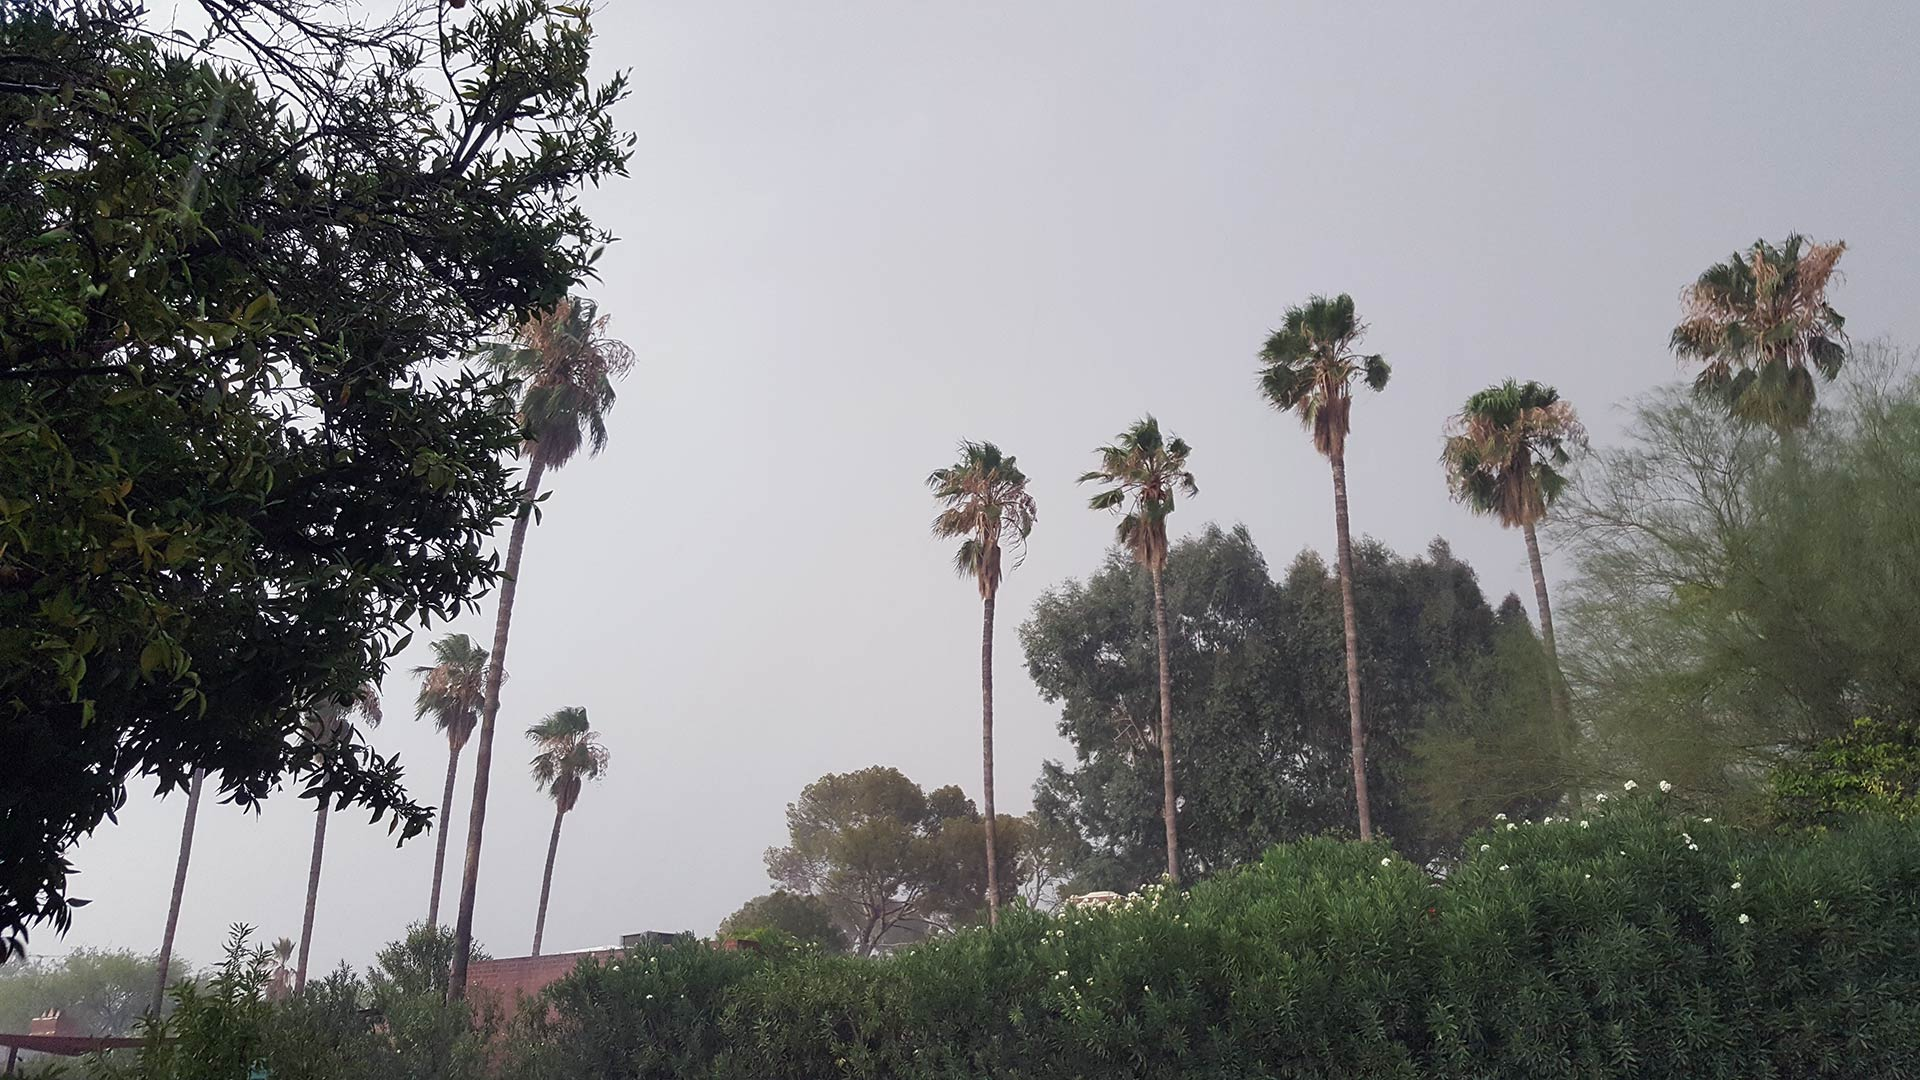 Strong winds from an afternoon storm affect some palm trees in midtown Tucson.